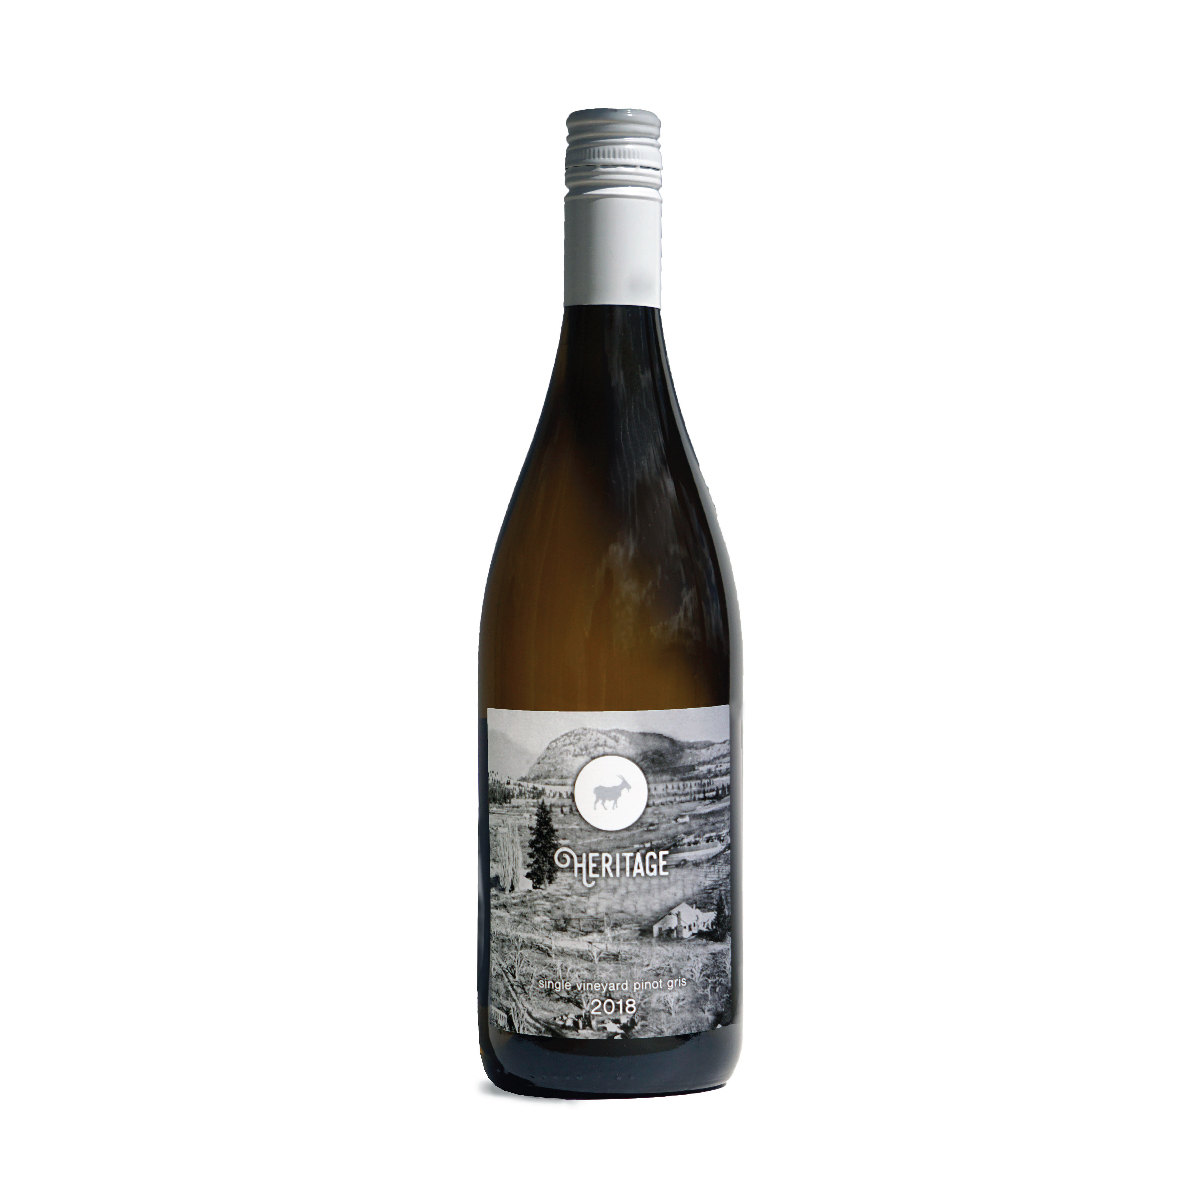 2018 Heritage Pinot Gris - $30.00The label of this heritage is an original photo of the property these grapes are grown on in the 1950s. The original white farm house still stands now on our vineyard property. This wine spaced with warm tree fruits in the nose and ripe round fruit on the pallet. A delicious blend of sweetness and acidity make this a wonderful wine for any occasion.